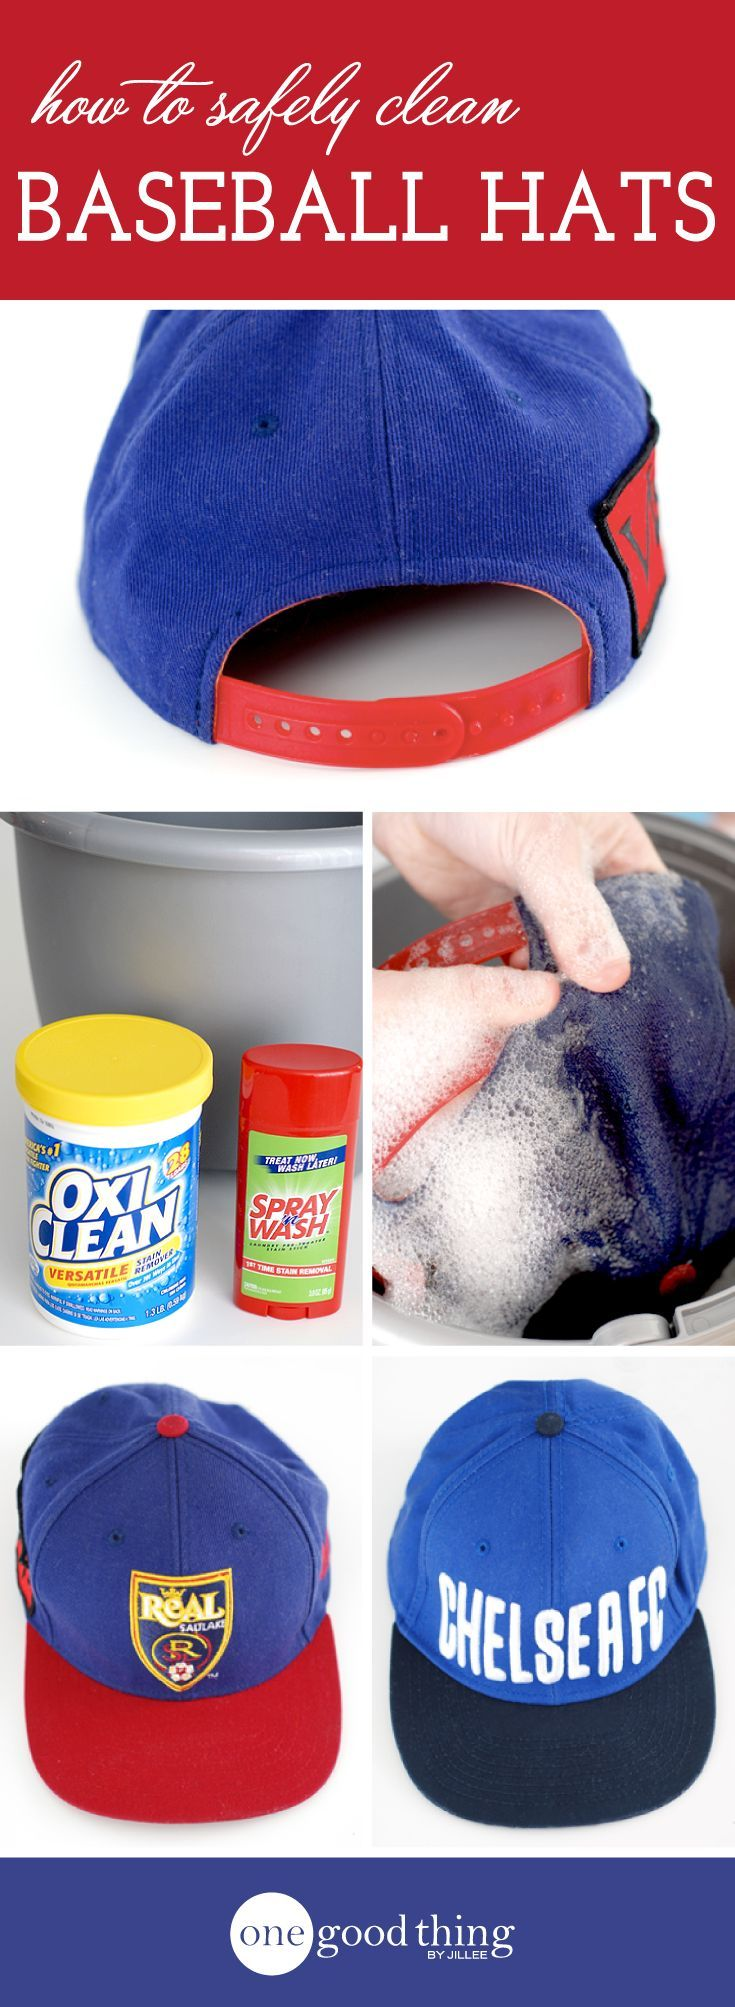 how to safely clean baseball hats shape cap d agde and